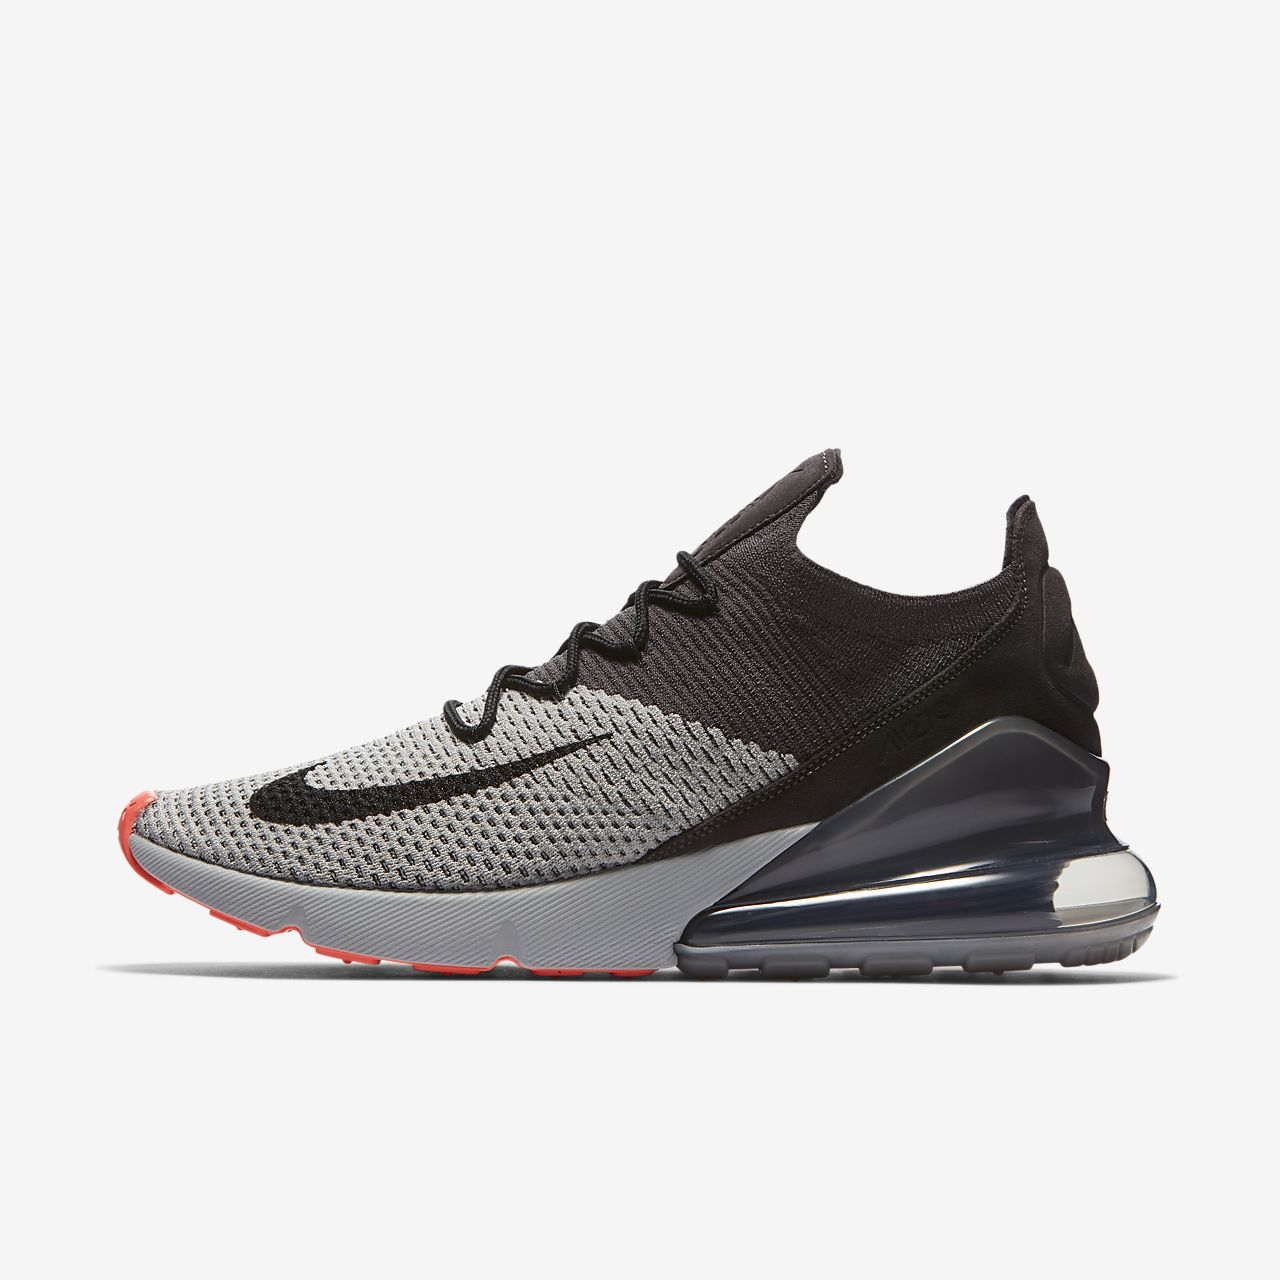 new concept 56859 efc26 ... Chaussure Nike Air Max 270 Flyknit pour Homme